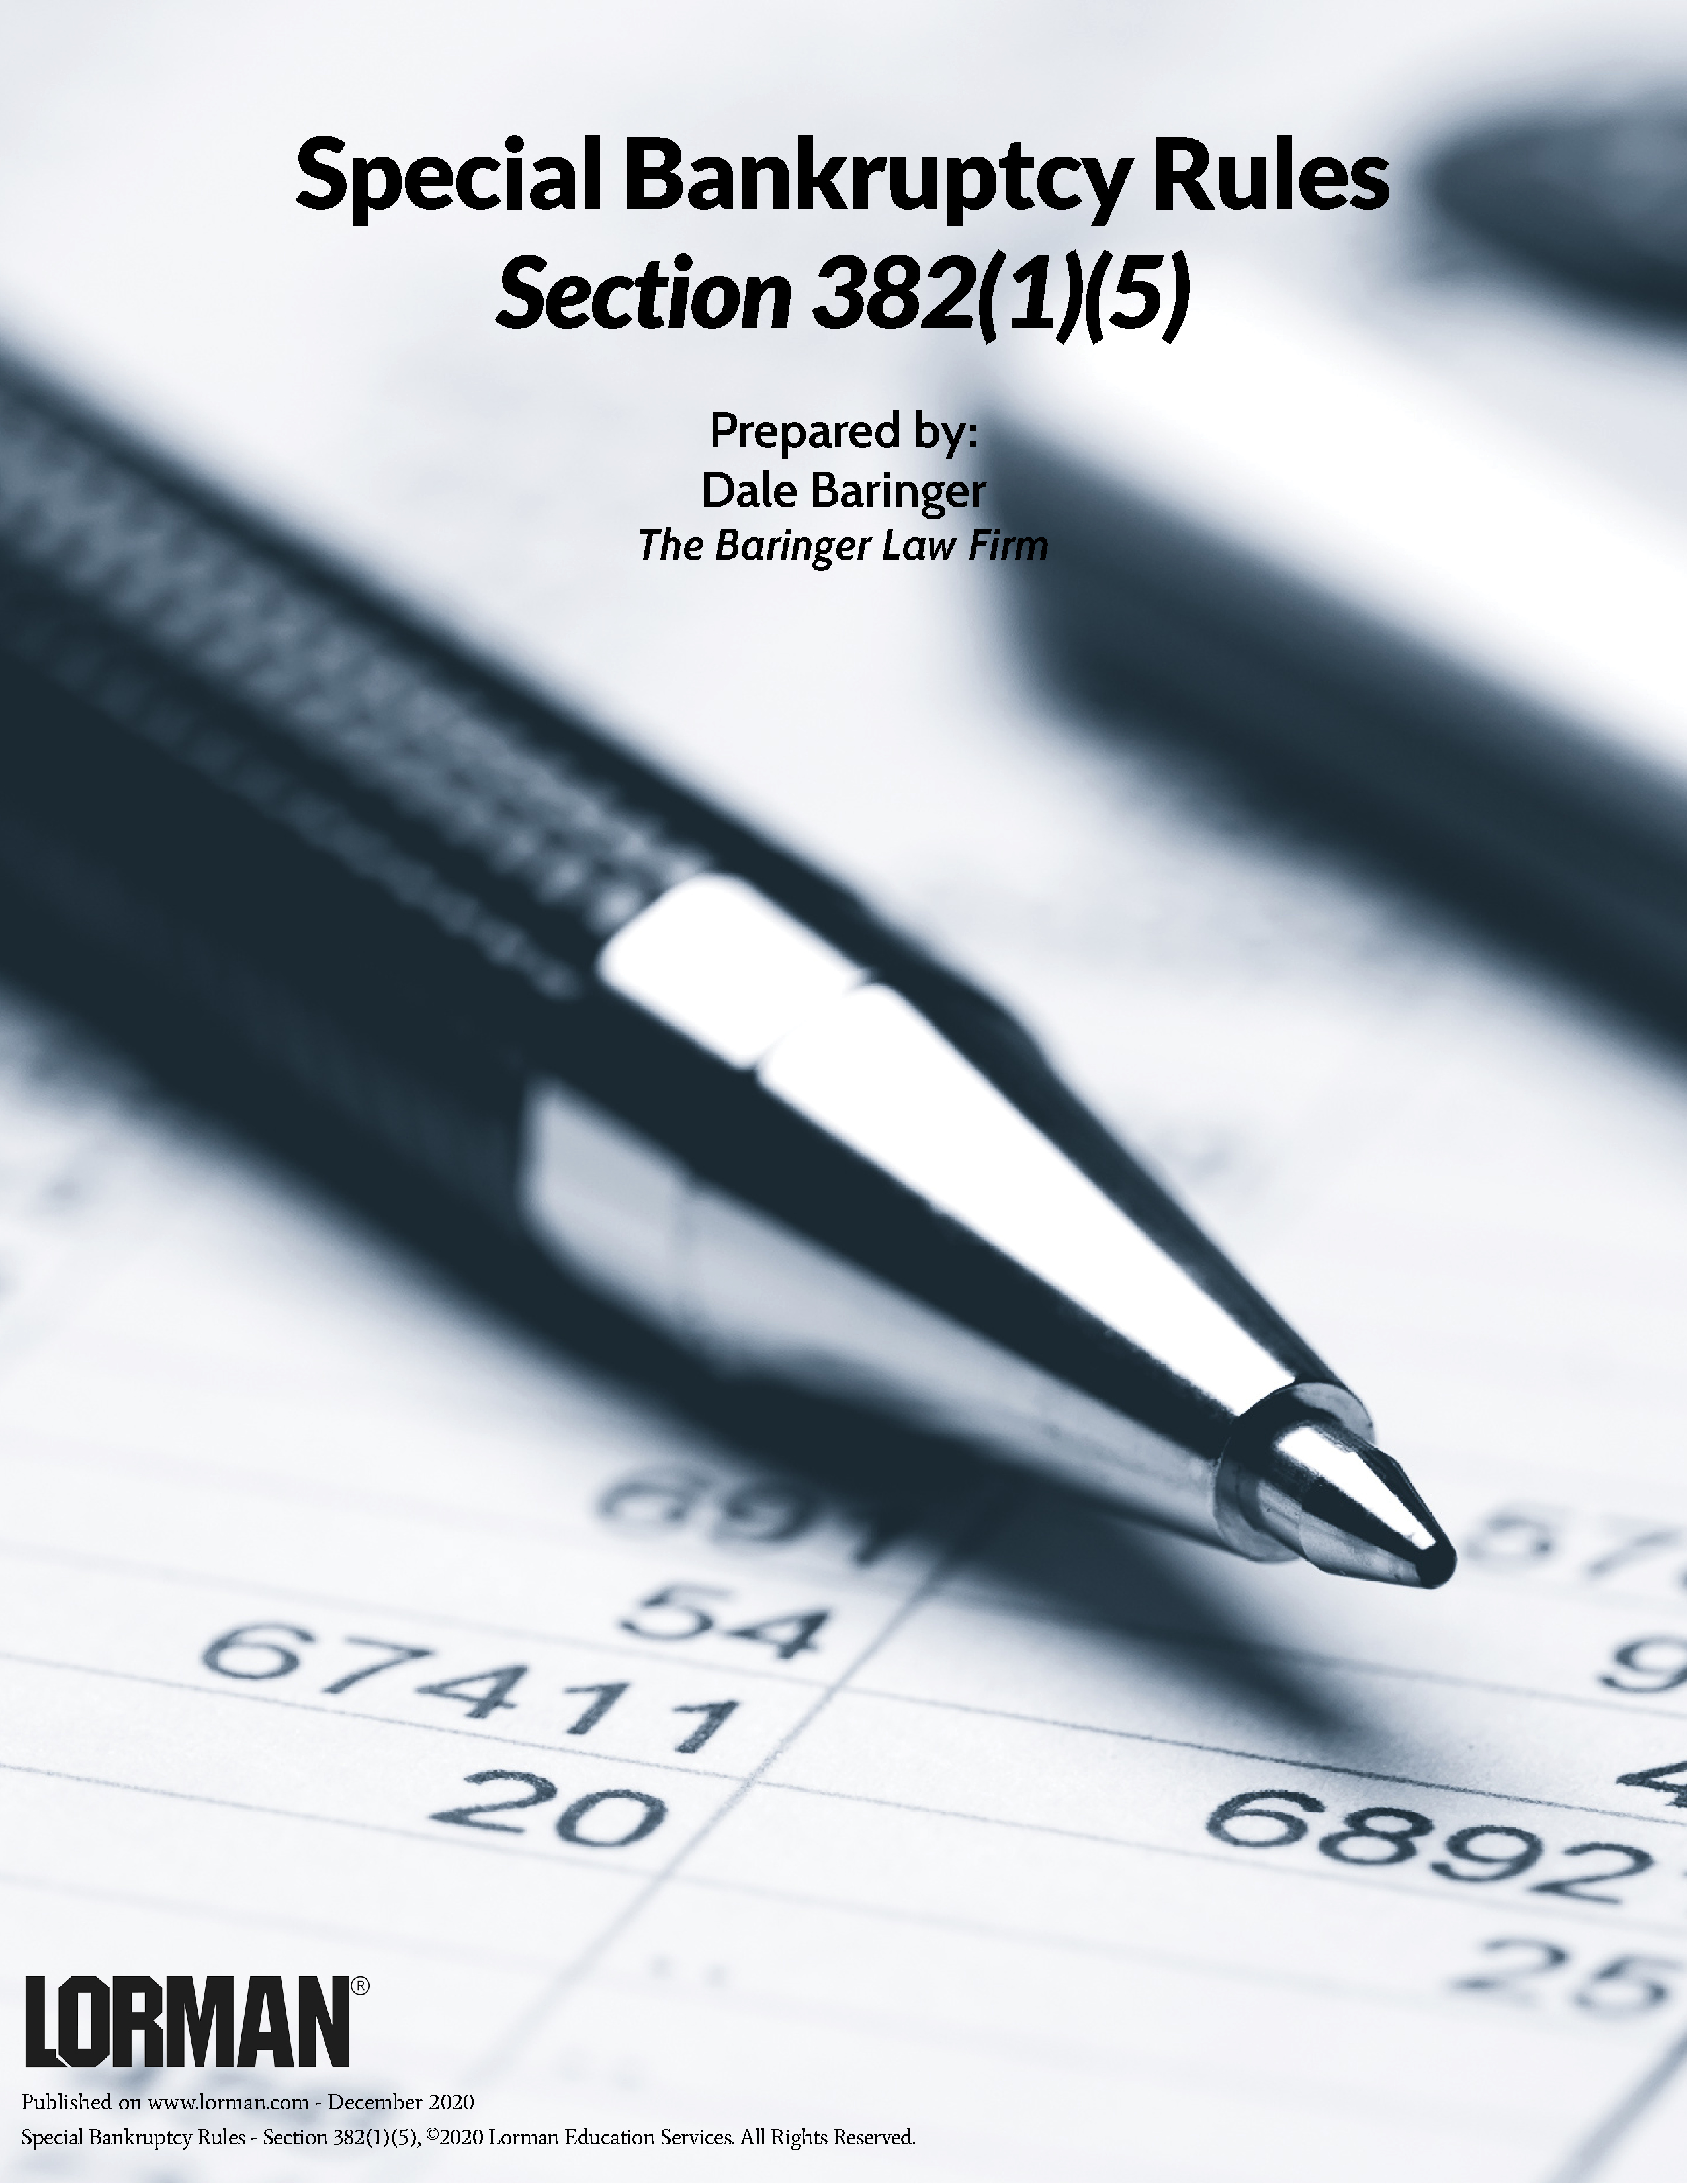 Special Bankruptcy Rules - Section 382(1)(5)